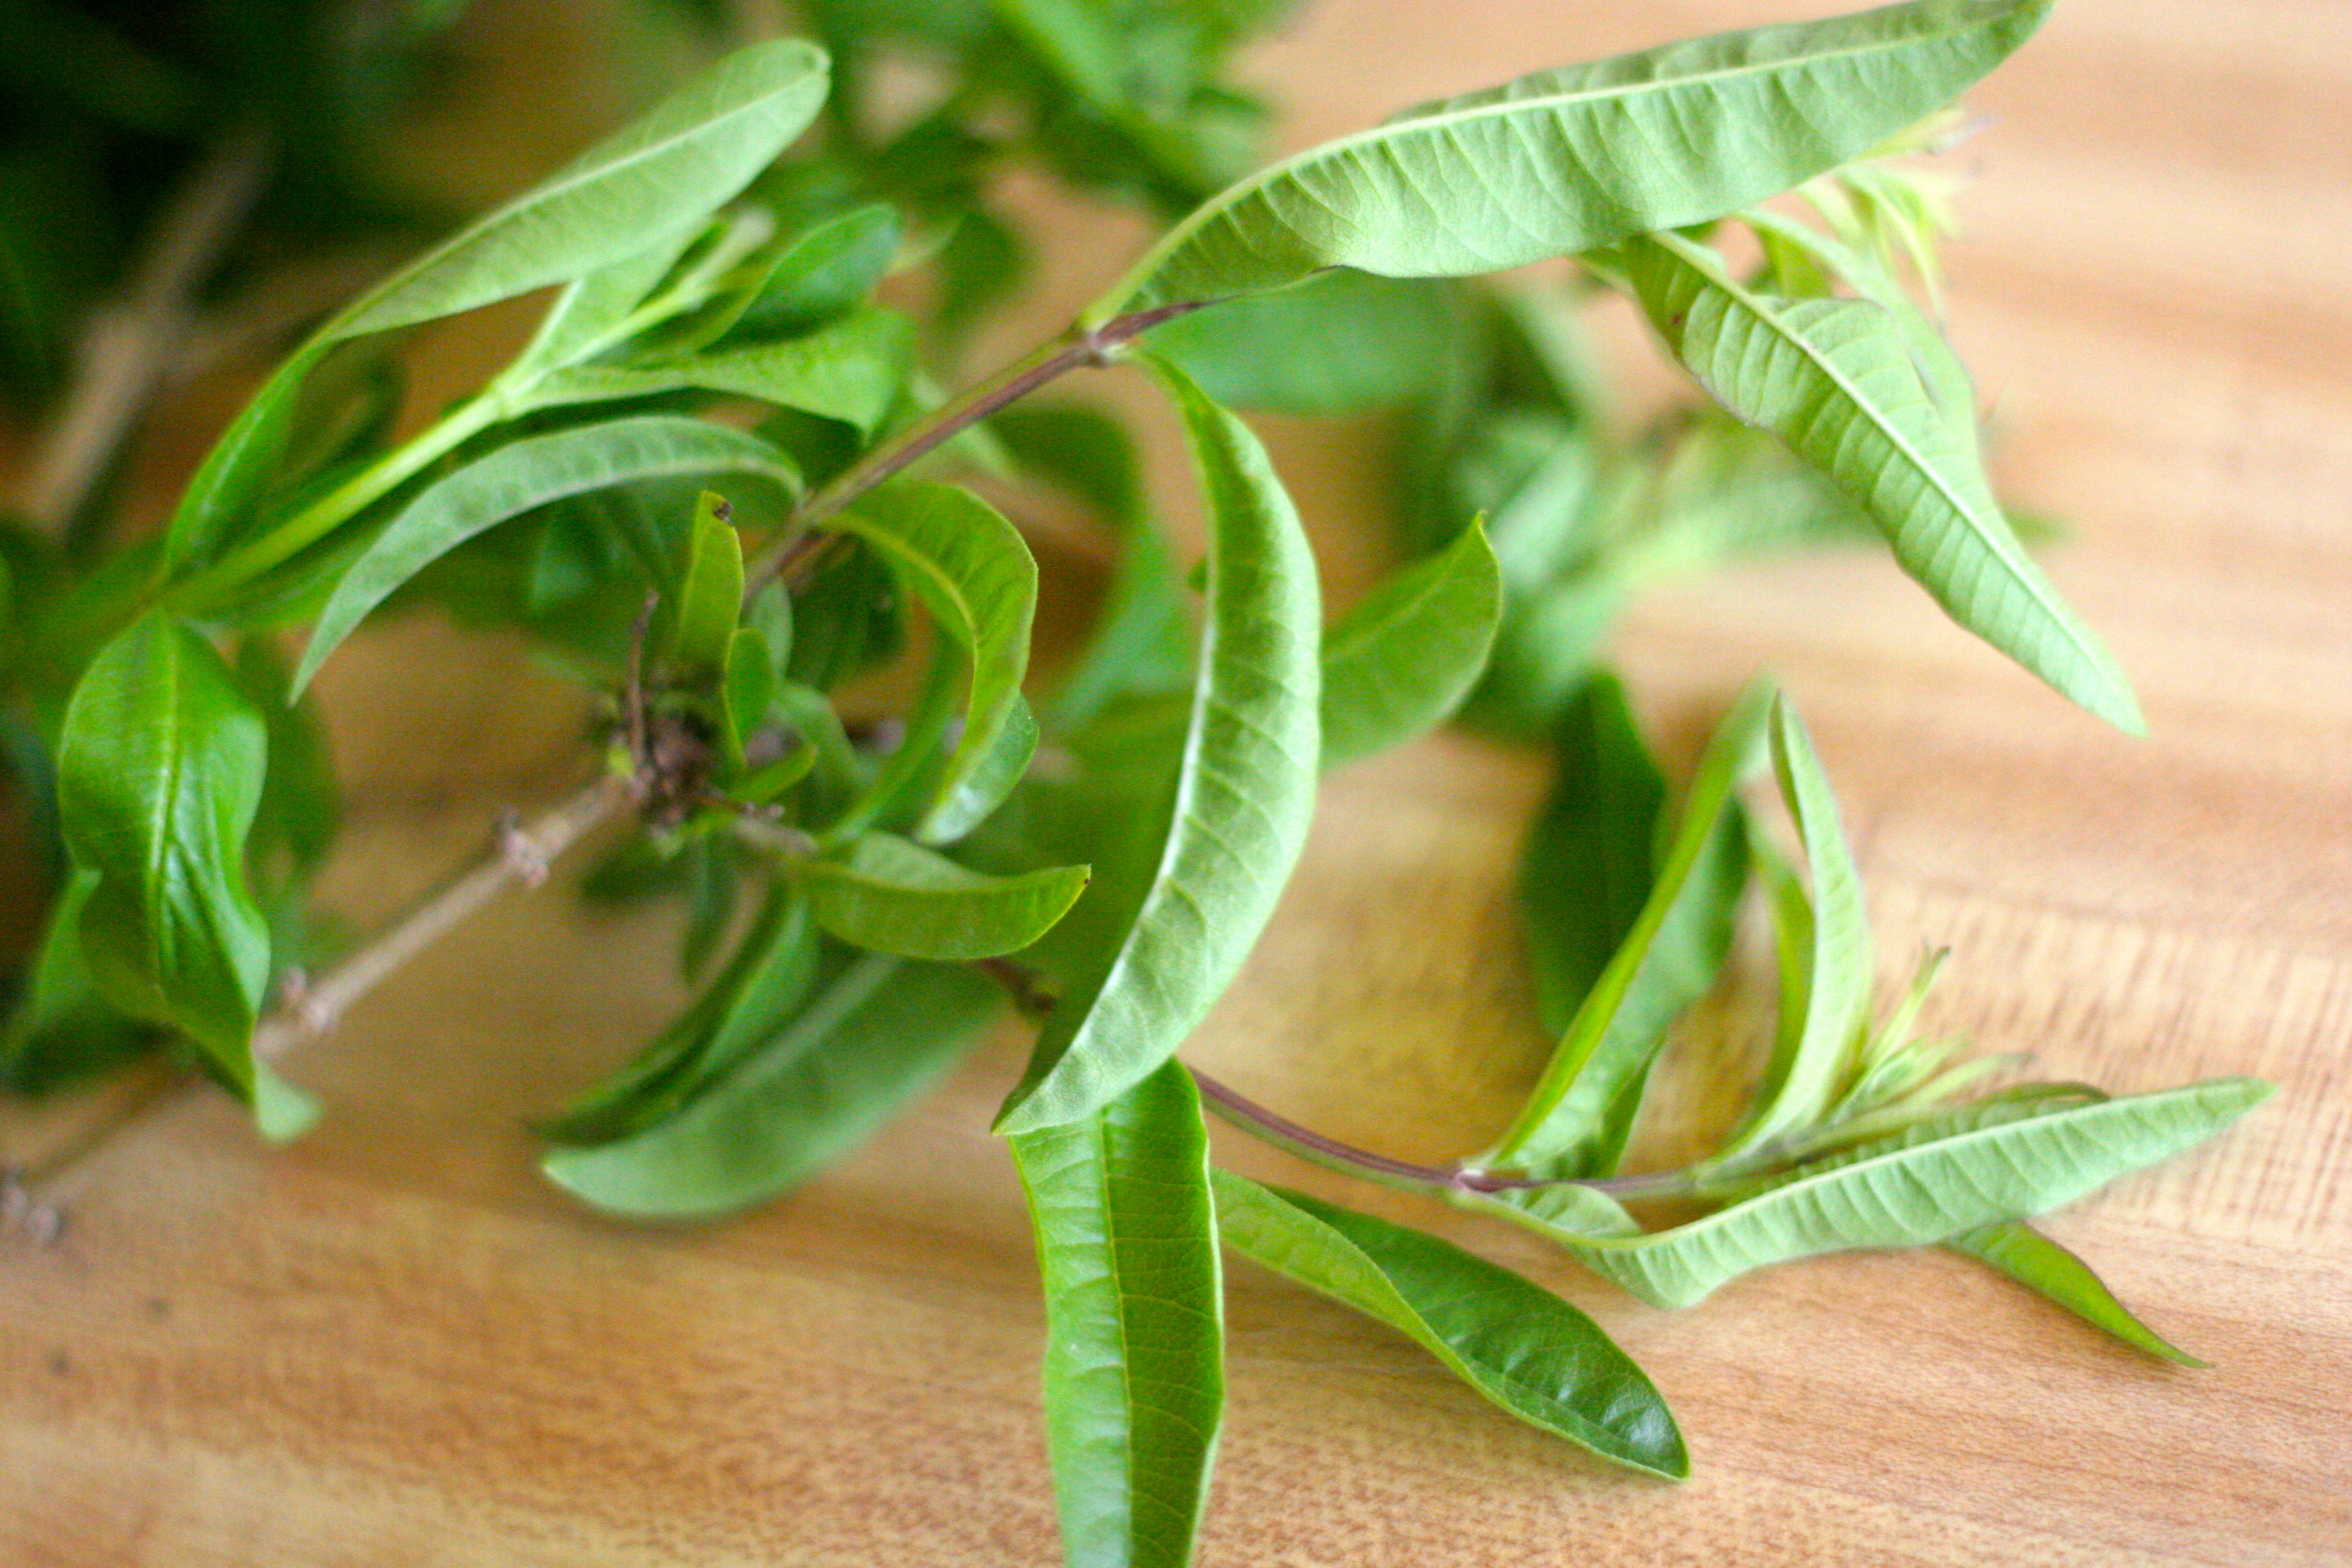 ... mint and leaves of lemon verbena are lemon verbena mint herb tea